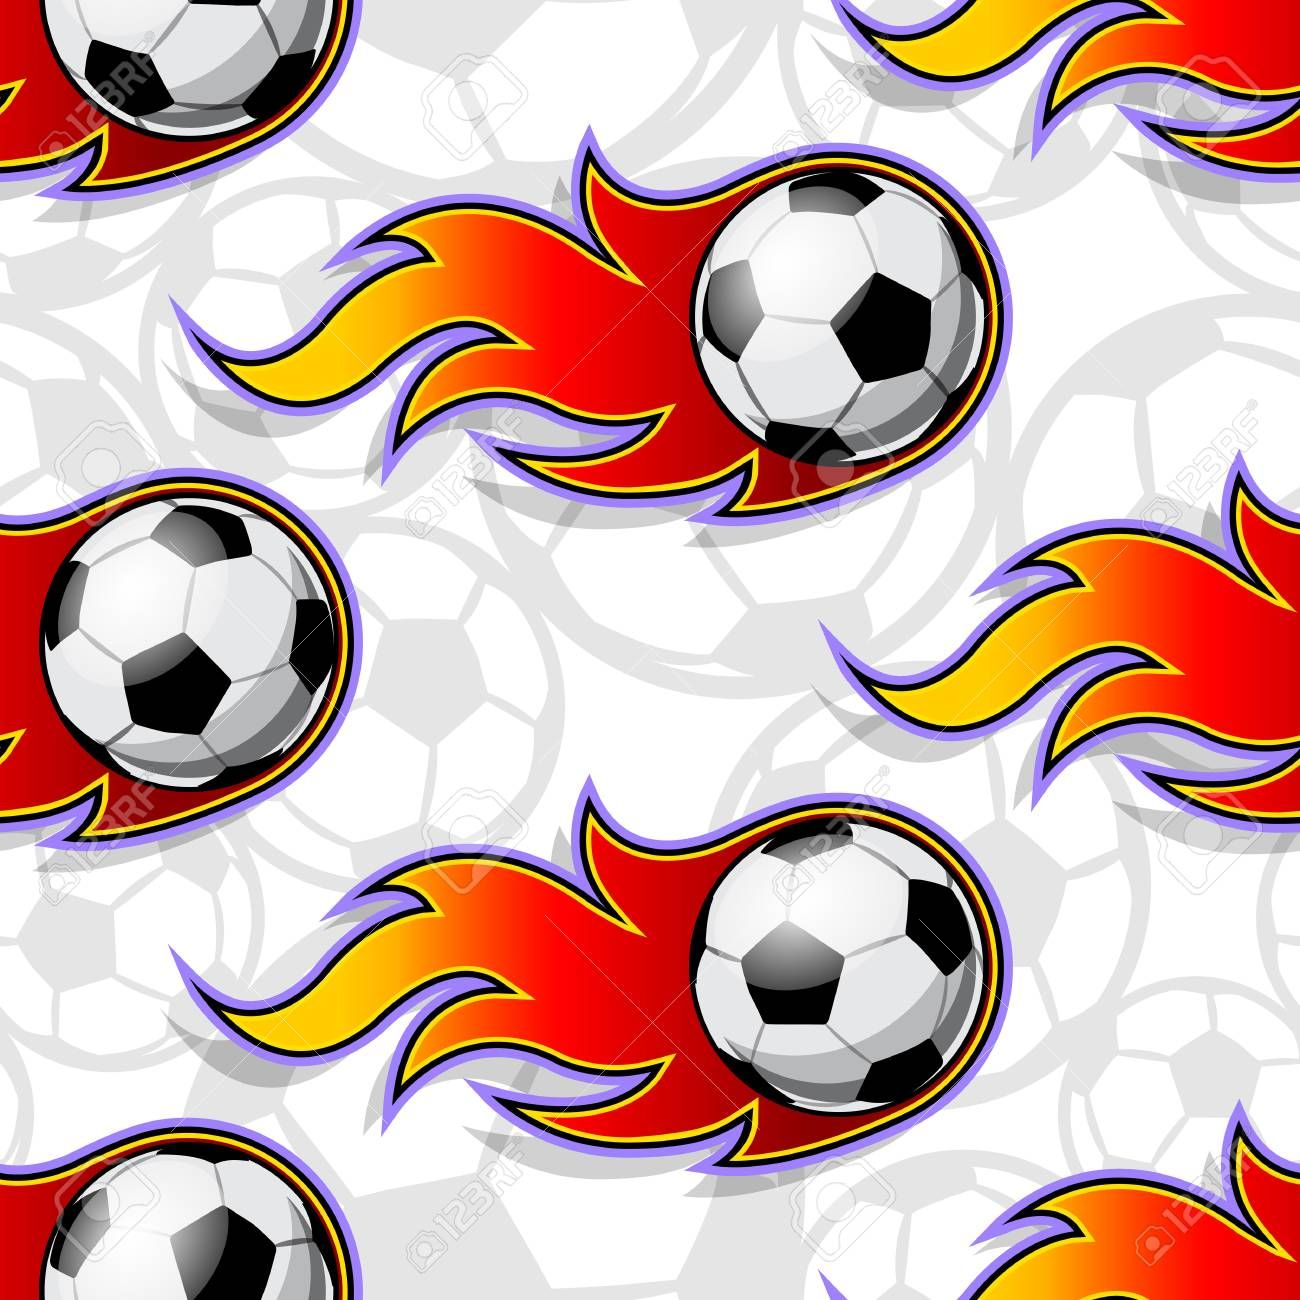 Seamless Pattern With Football Soccer Ball Icons And Flames Vector Illustration Ideal For Wallpap In 2020 Construction Business Cards Soccer Ball Vector Illustration